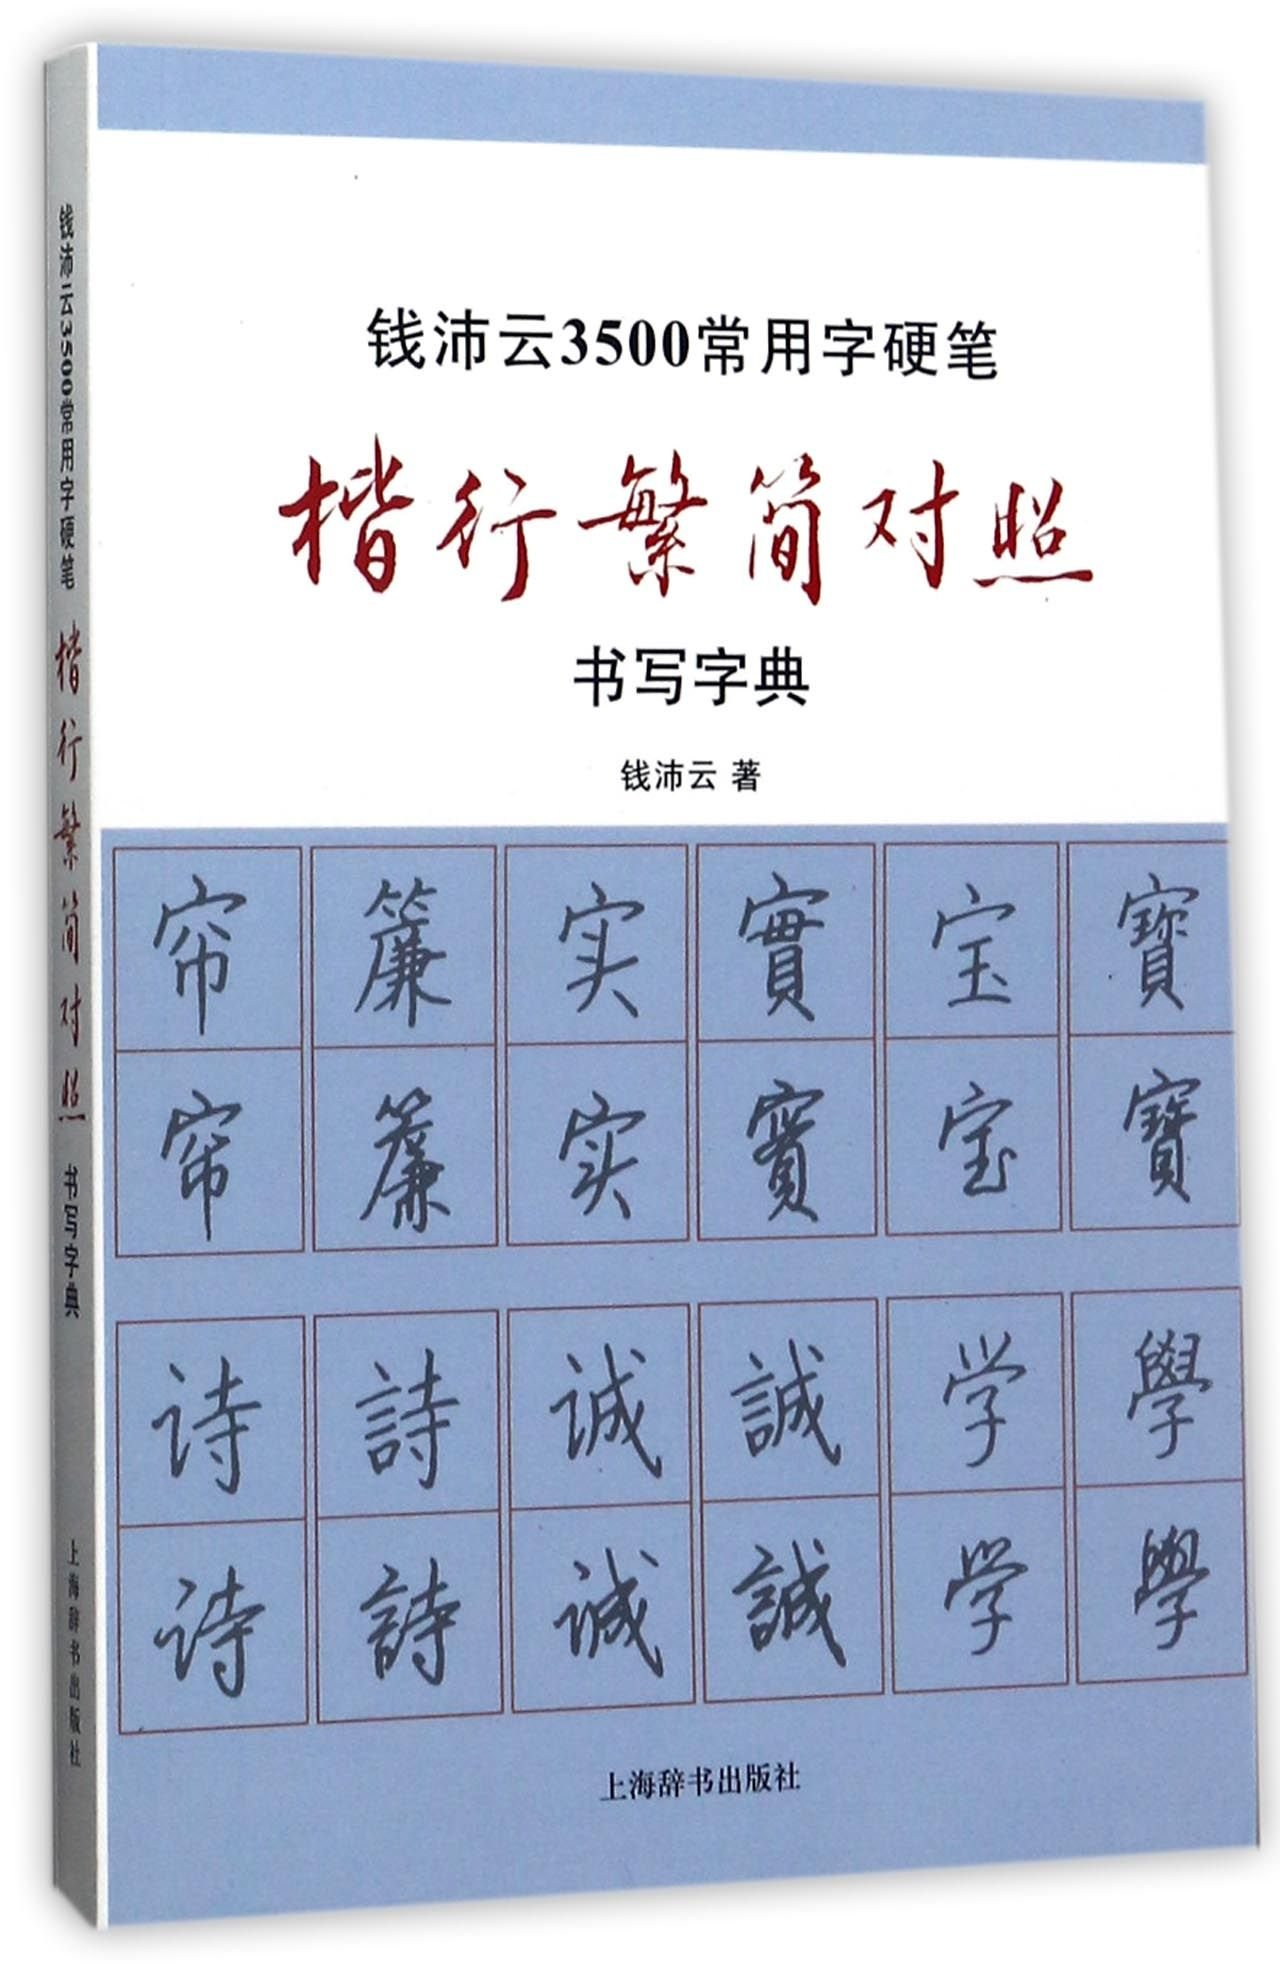 Qian Peiyun Pen-and-Ink Calligraphy Dictionary  (Chinese Edition)